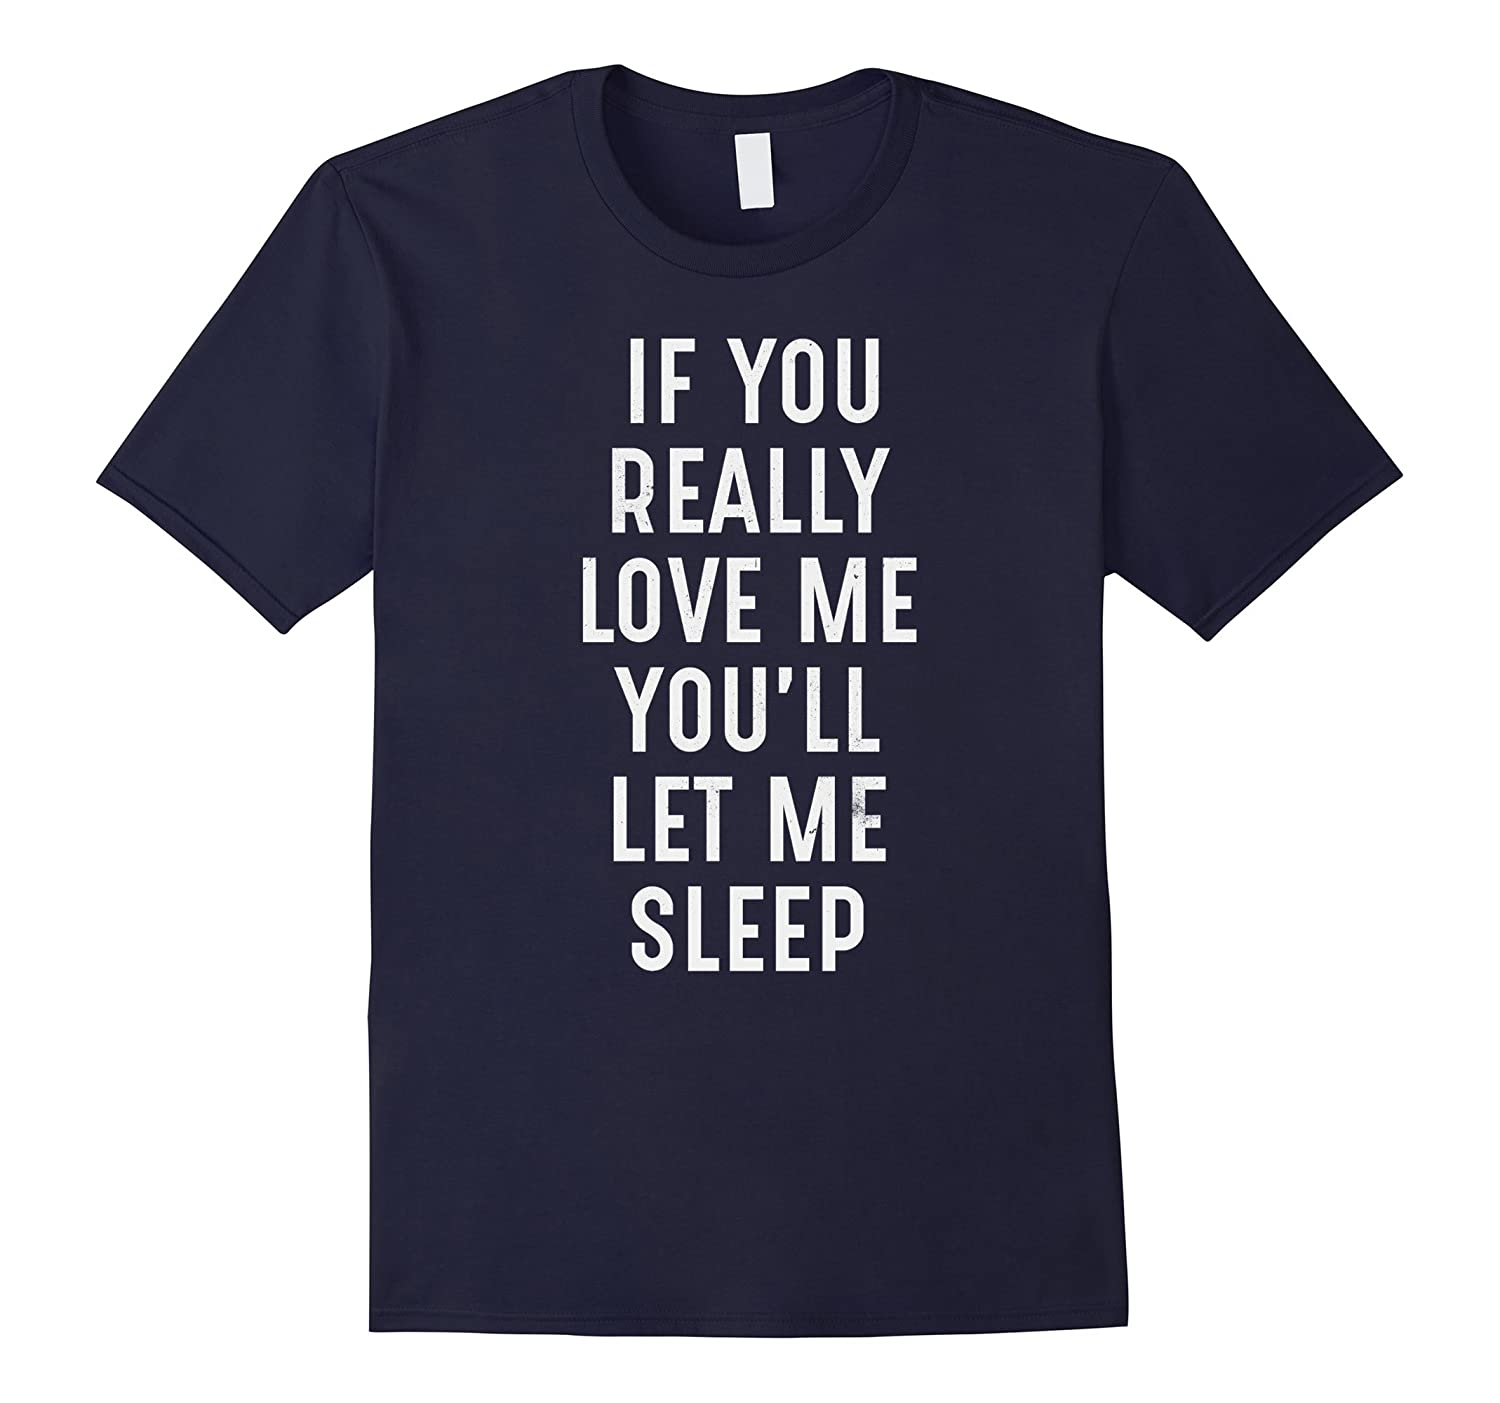 If you really love me, you'll let me sleep, funny t-shirt-FL